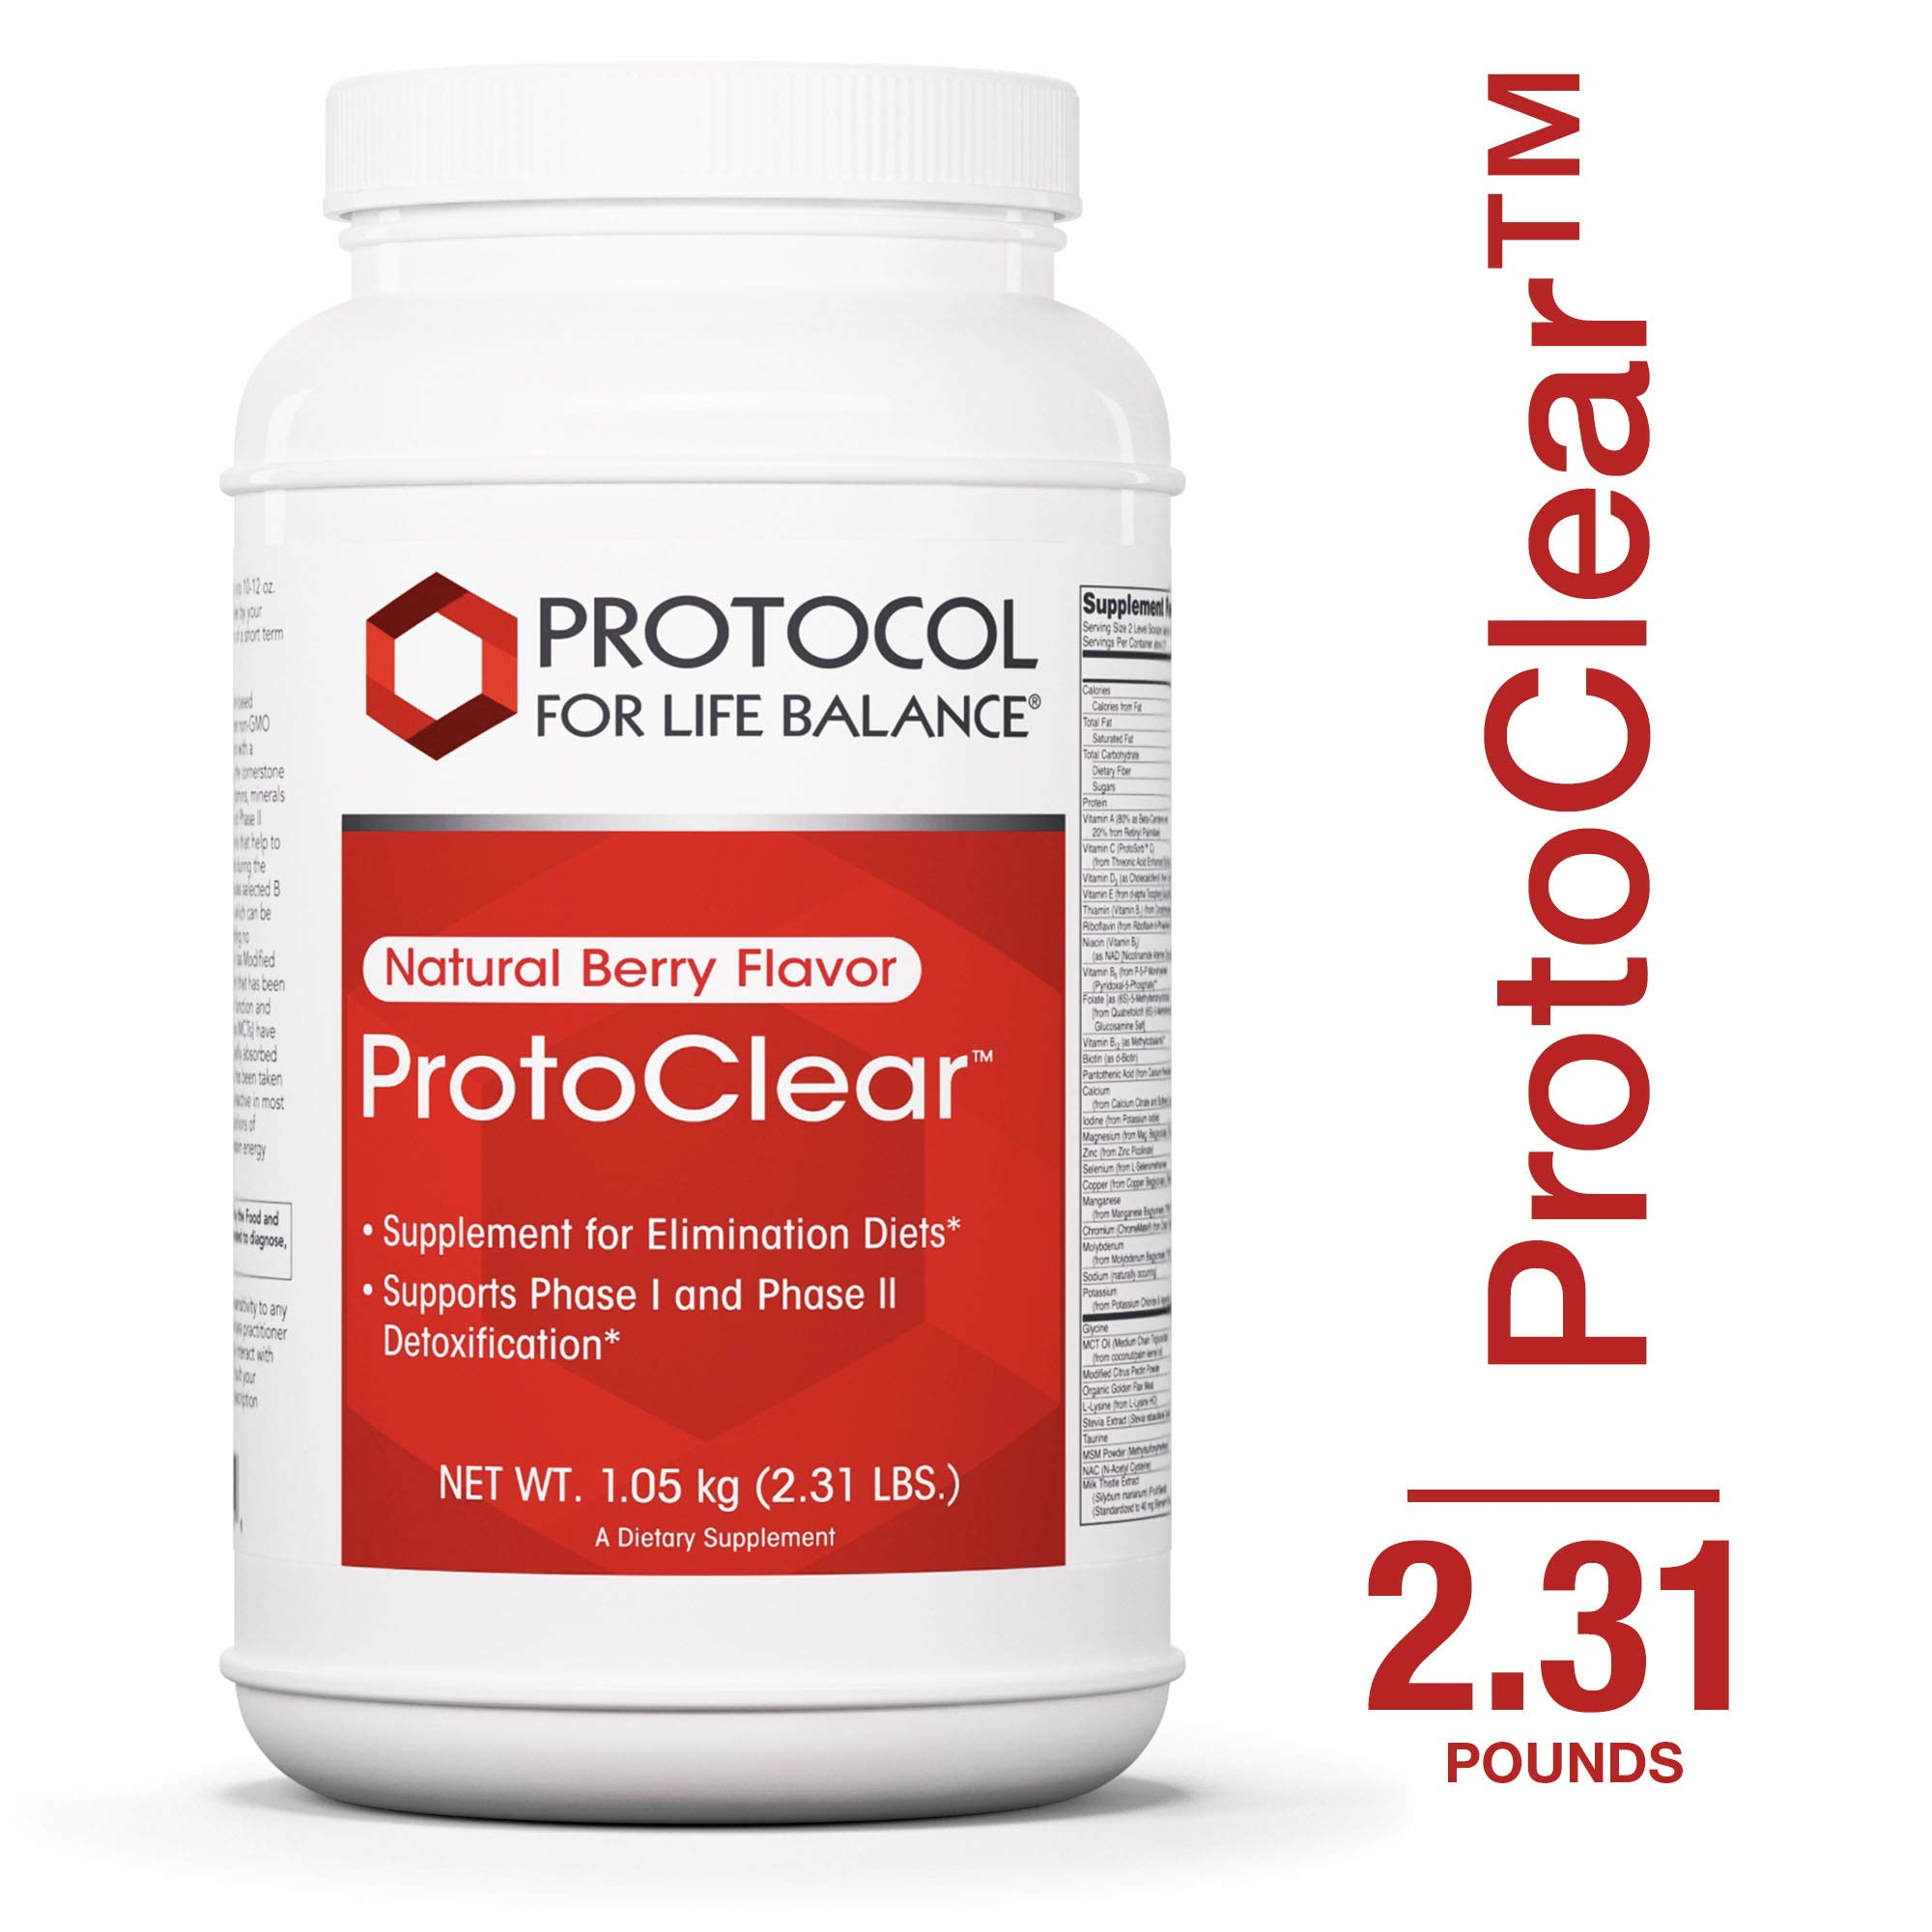 Protocol For Life Balance - ProtoClear™ - Vegetarian Pea Protein - Support for Detoxification and Elimination Diets BioAvailable Supplemental Formula - Natural Berry Flavor - 1.05 kg (2.31 lbs)